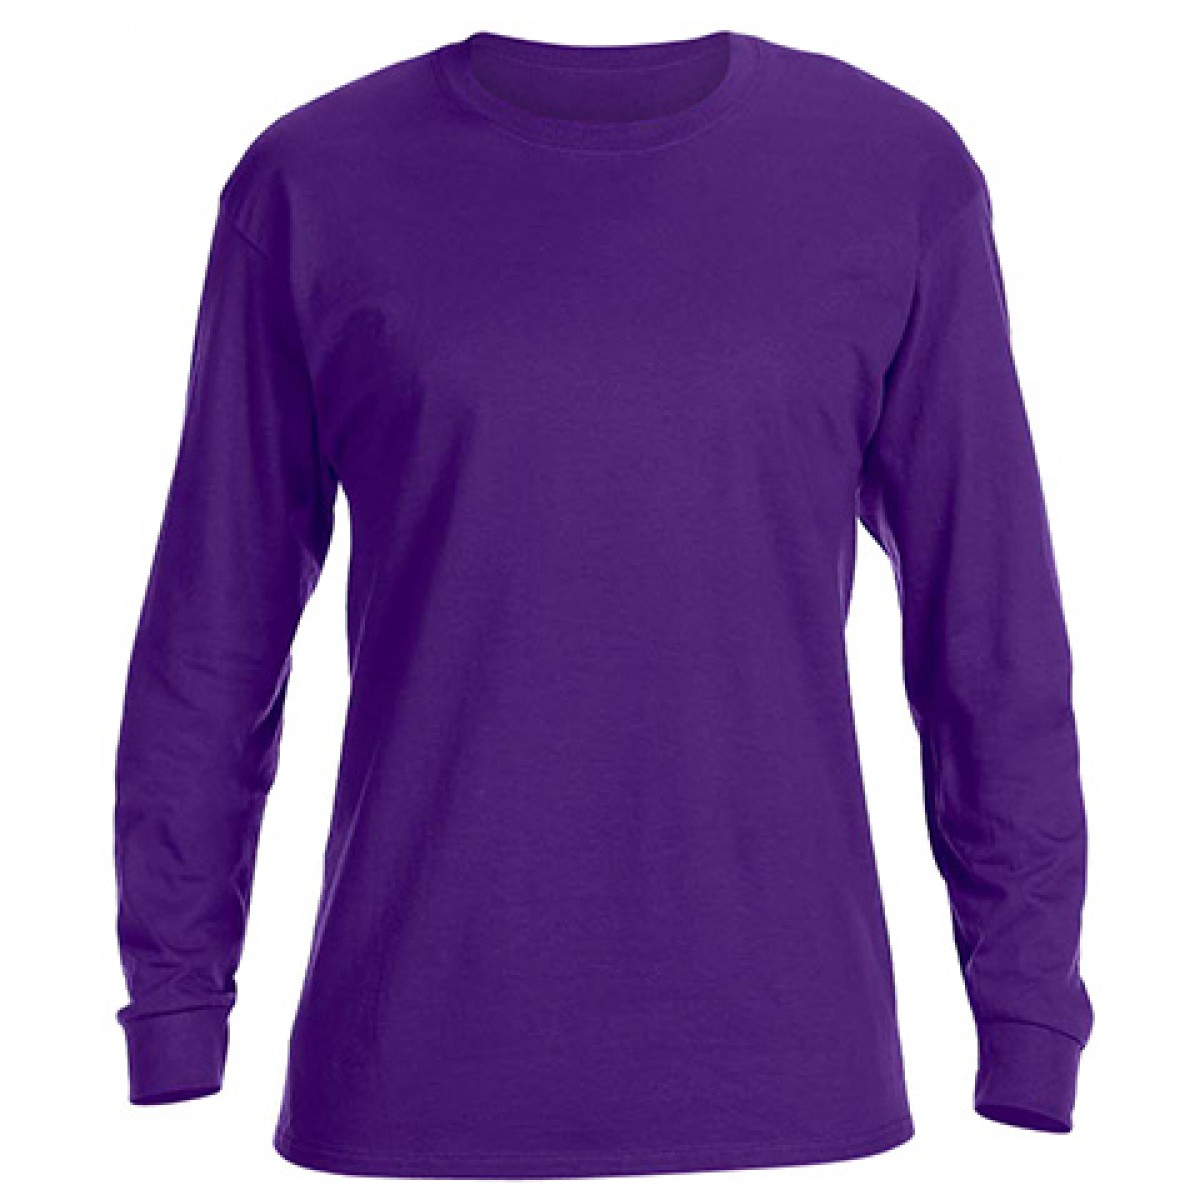 Basic Long Sleeve Crew Neck -Purple-2XL